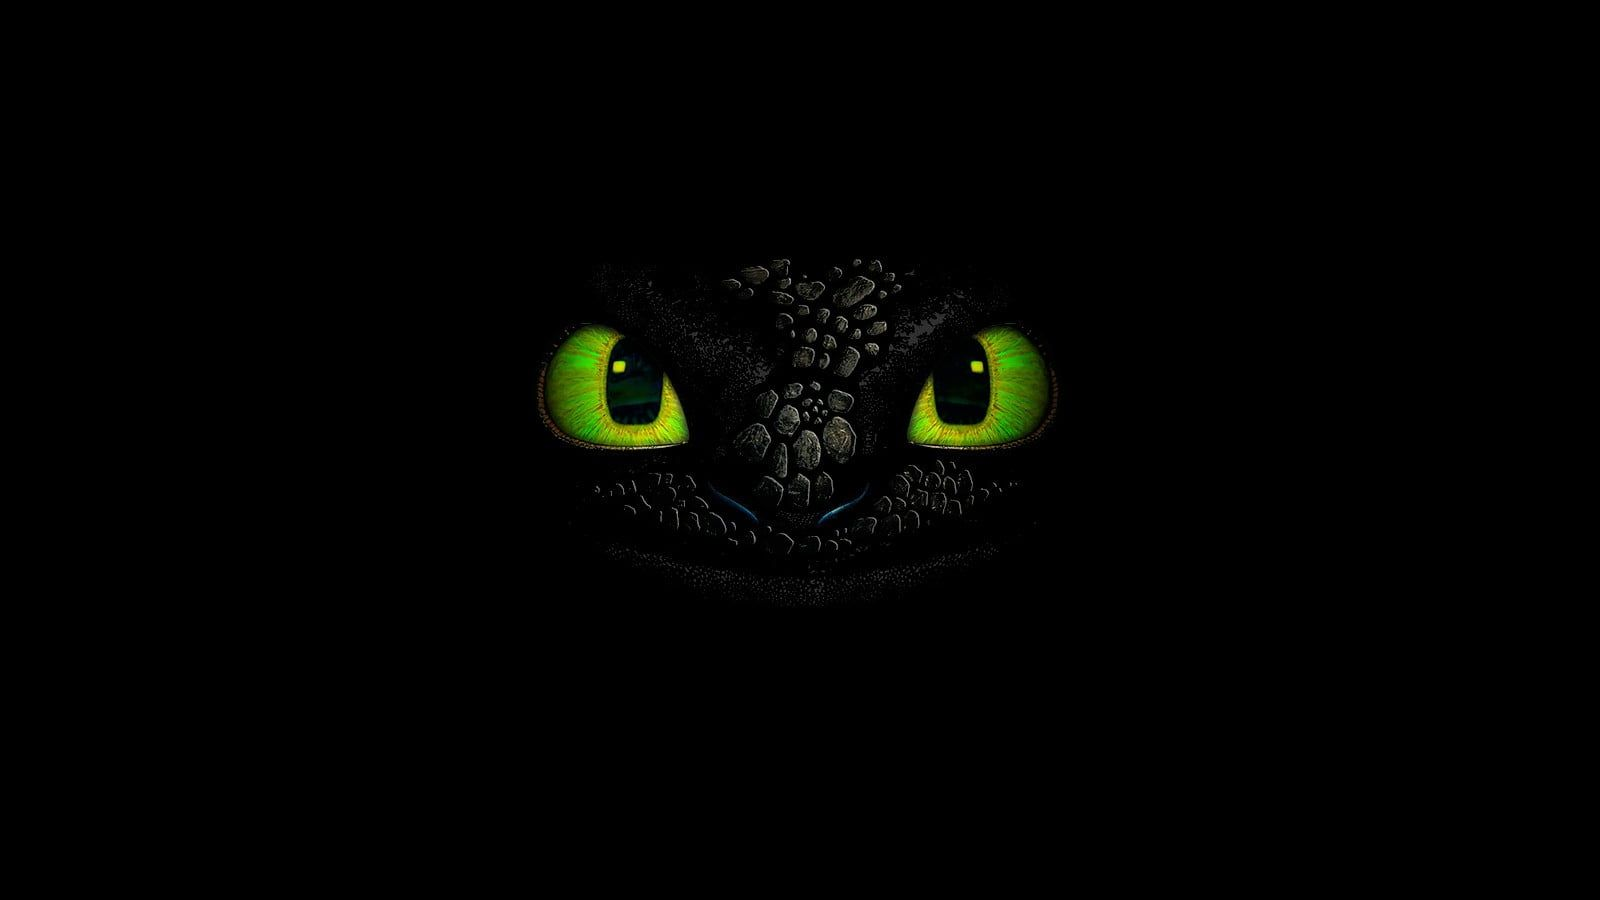 Toothless Illustration How To Train Your Dragon Black Toothless Simple Background Dragon Toothless Wallpaper How Train Your Dragon Dragon Wallpaper Iphone